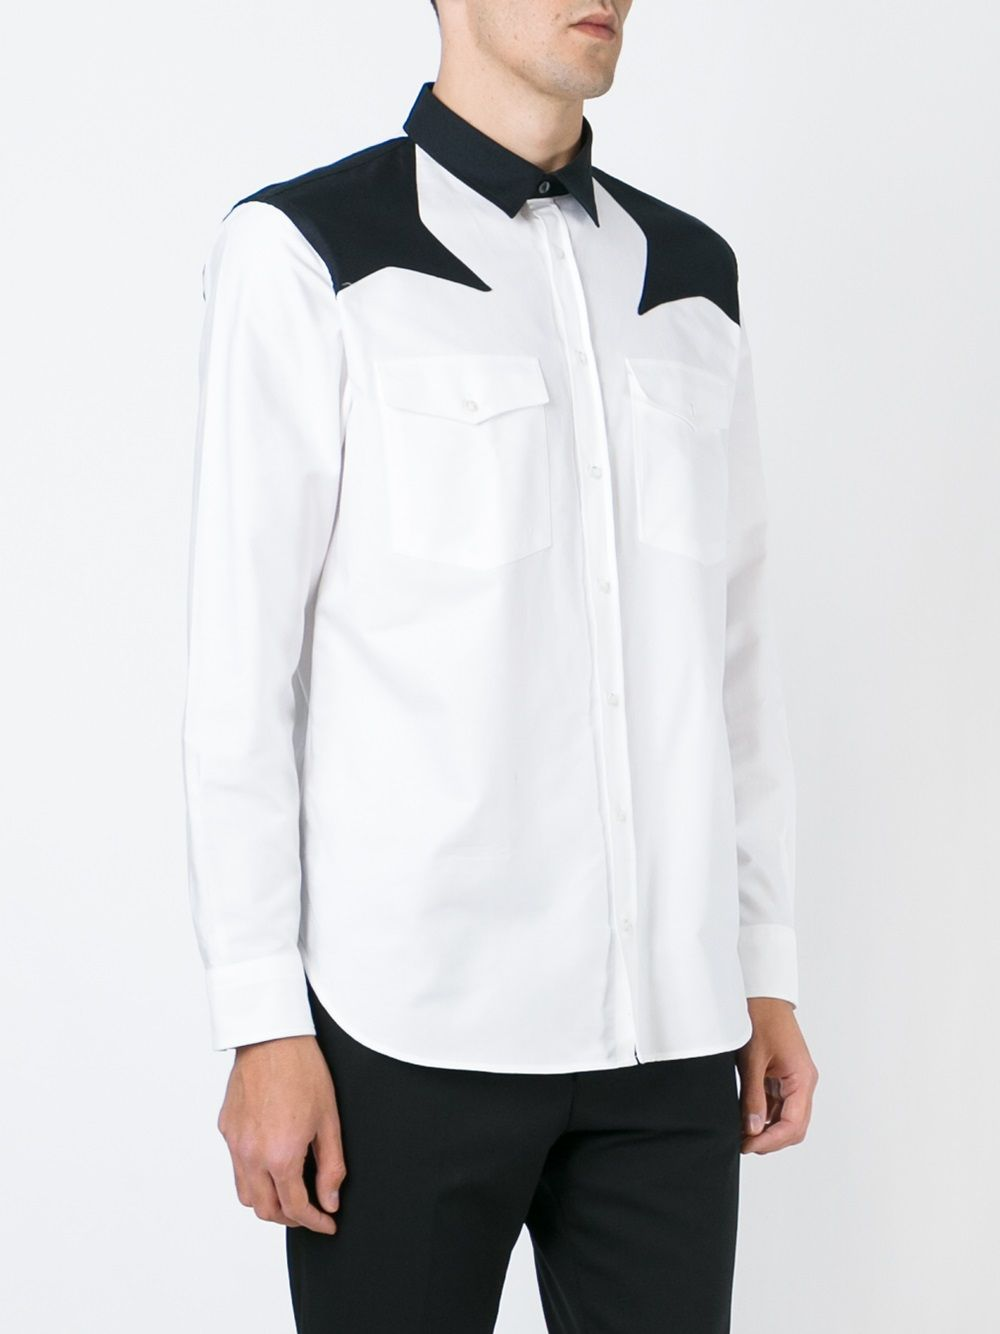 White cotton shirt featuring black star patch on the shoulders MSGM |  | 1940ME14X-154617BIANCO-NERO